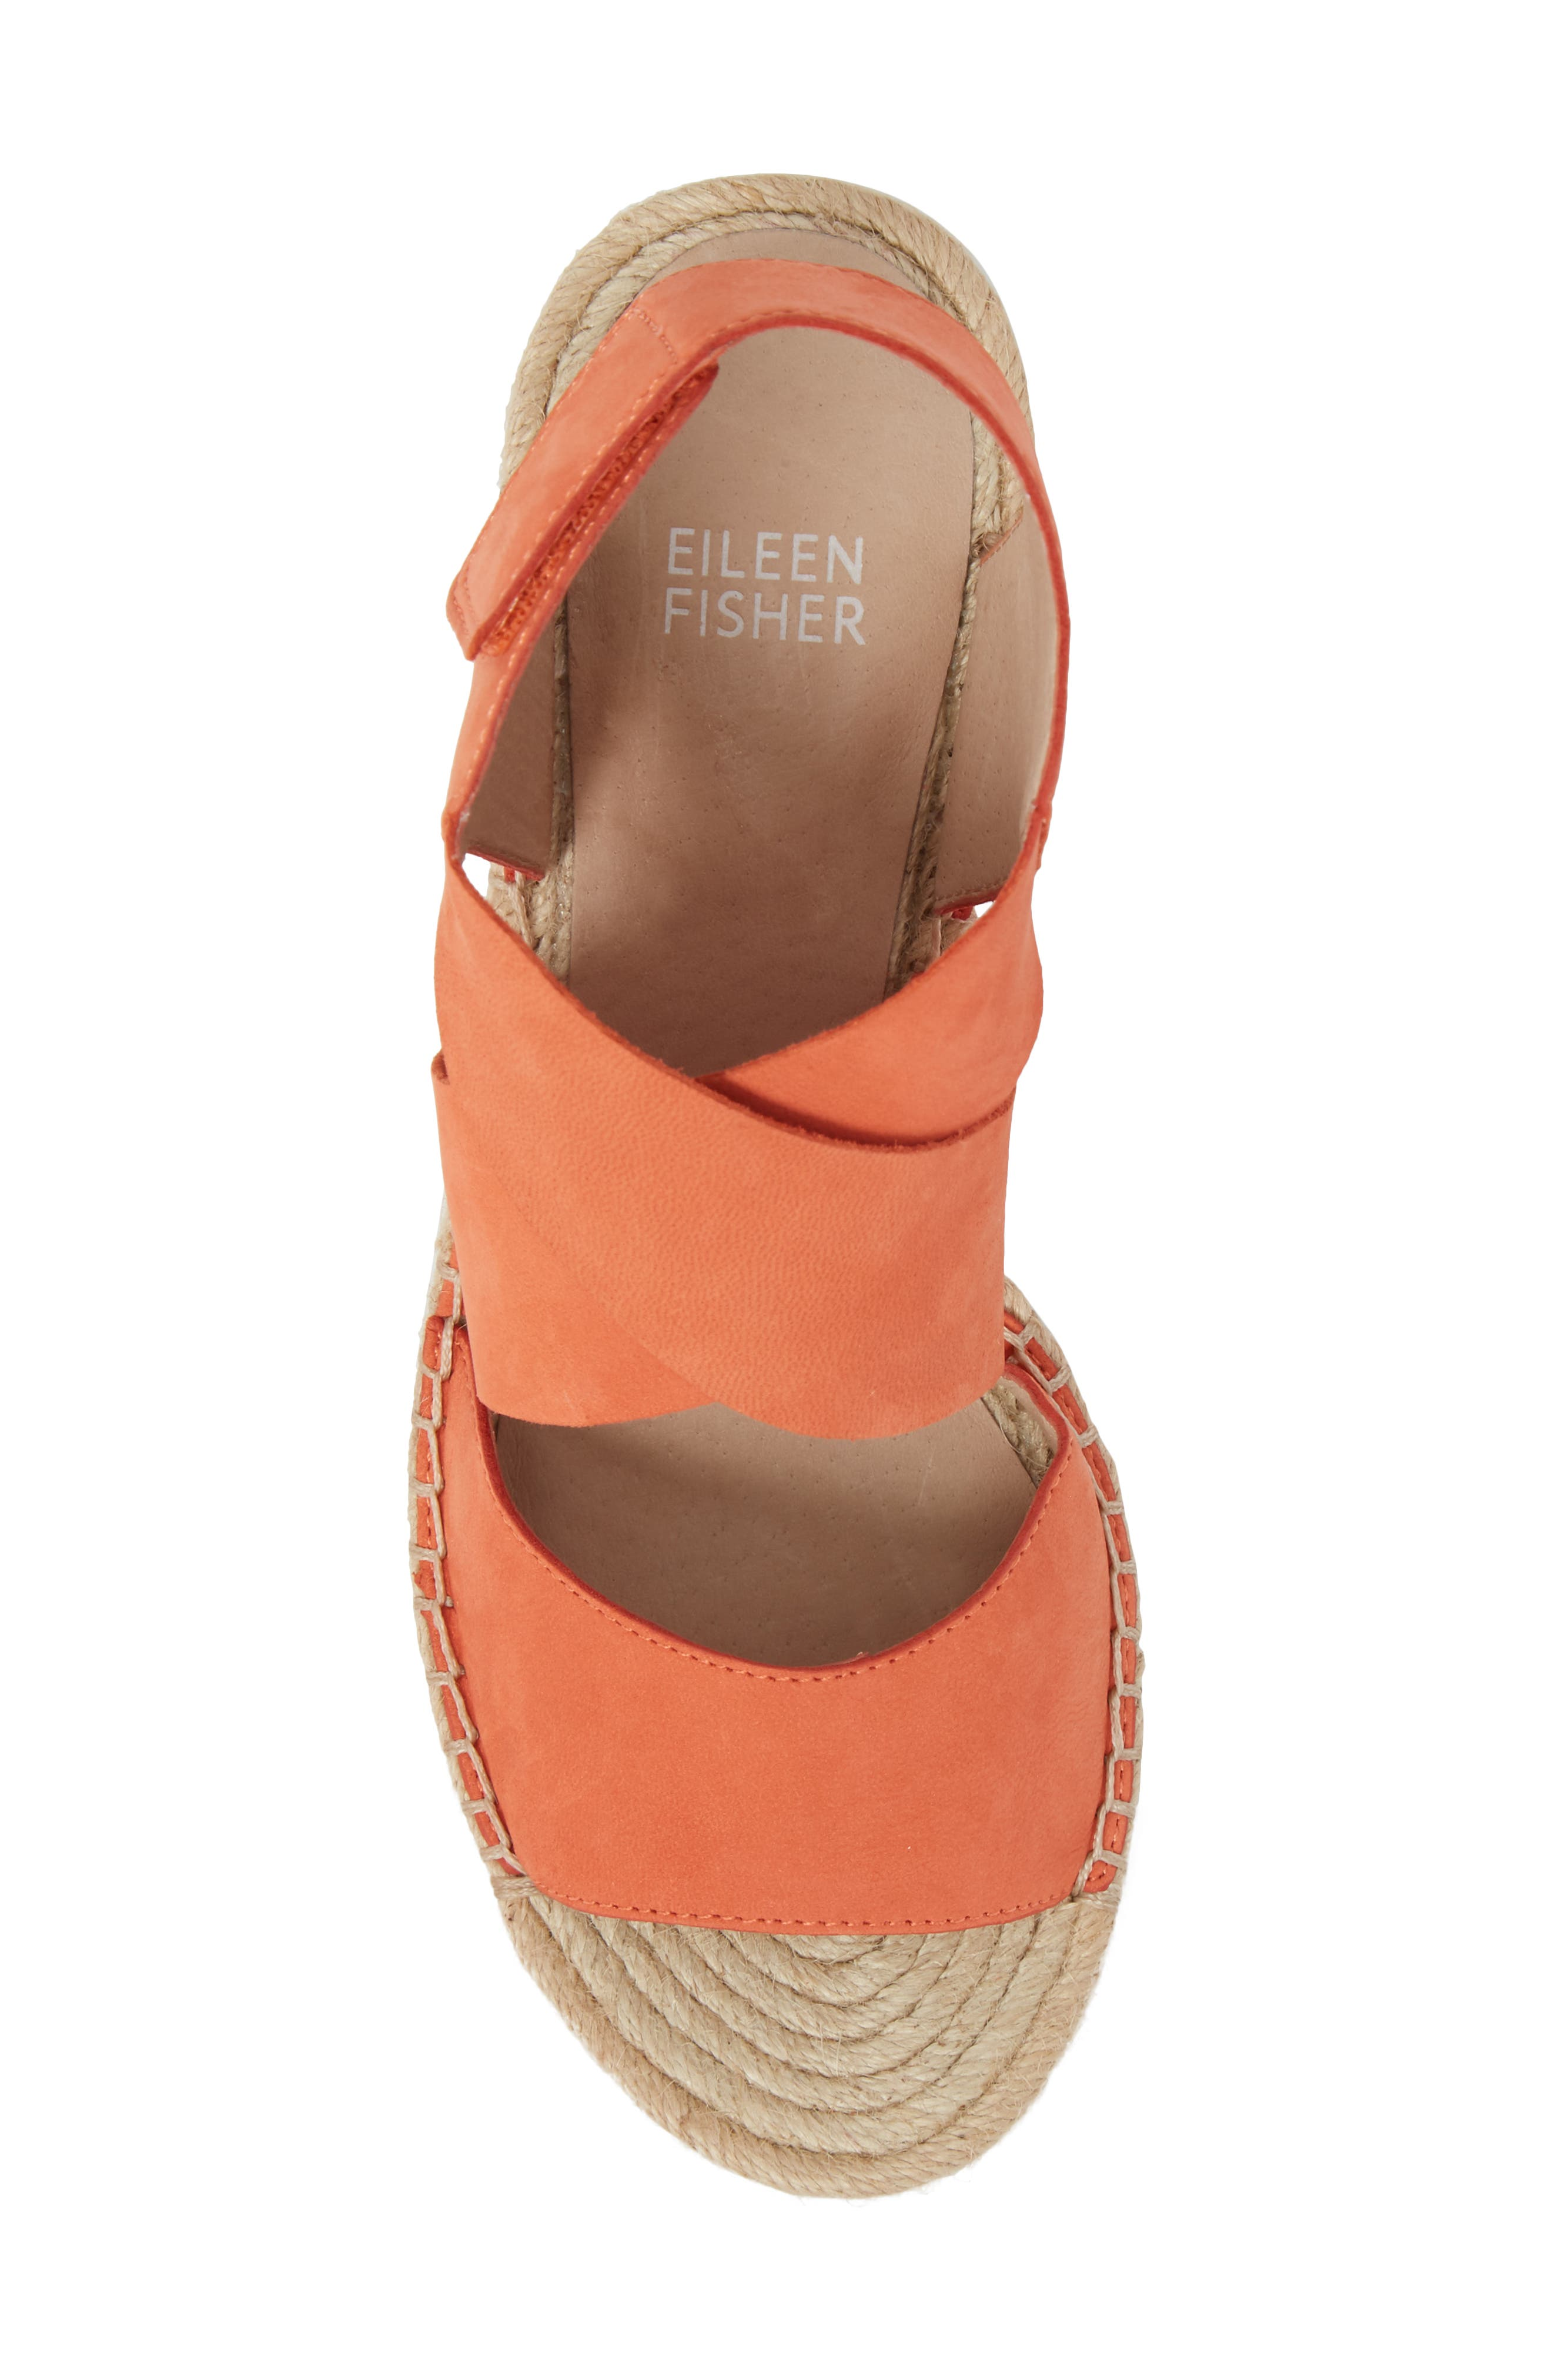 'Willow' Espadrille Wedge Sandal,                             Alternate thumbnail 5, color,                             Persimmon Leather